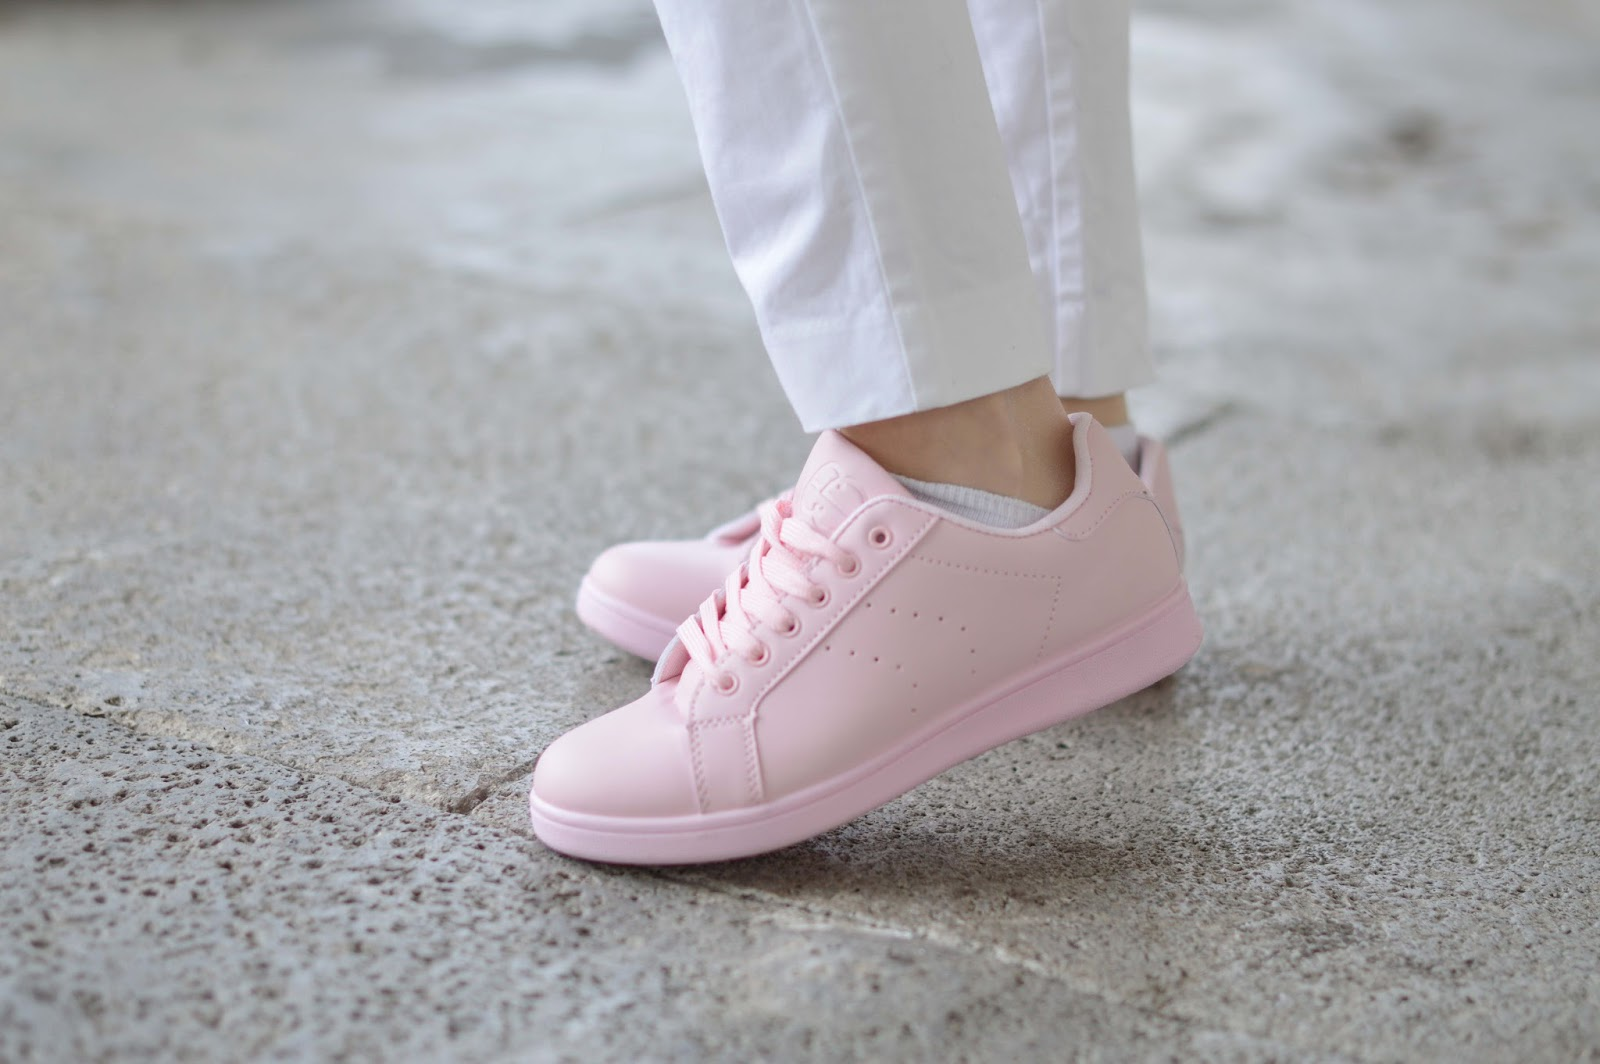 Rosa Sneaker - Rosa Turnschuhe - Blogge in rosa Schuhen - Rosa Flats - Rose Shoes - Fashionblogger aus Frankfurt - Frankfurt Fashionblogger